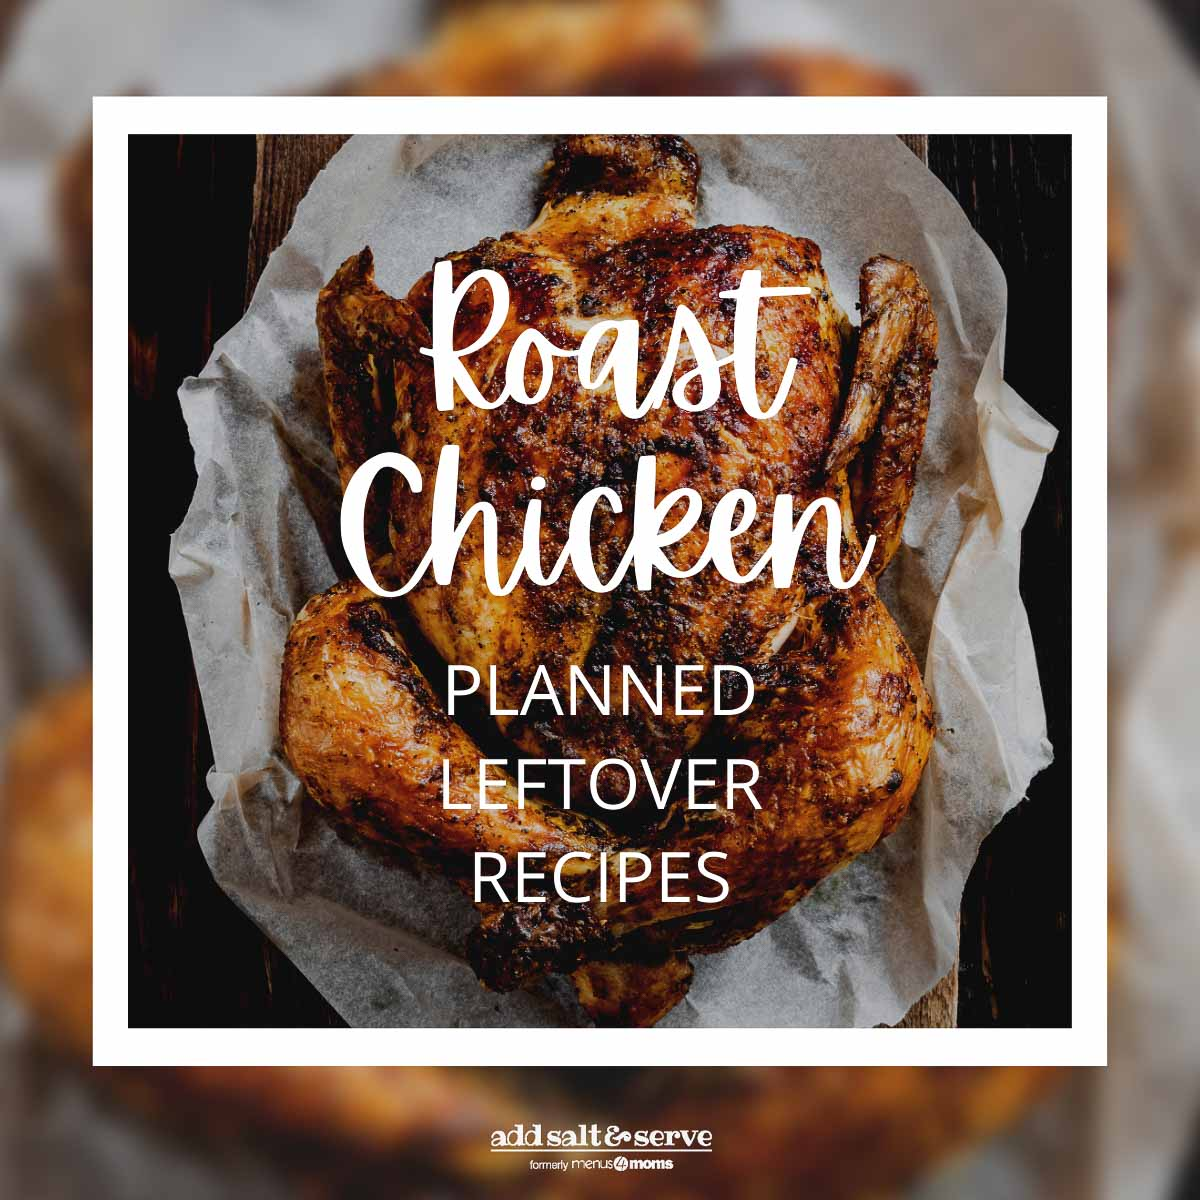 Roast Chicken Planned Leftover Recipes